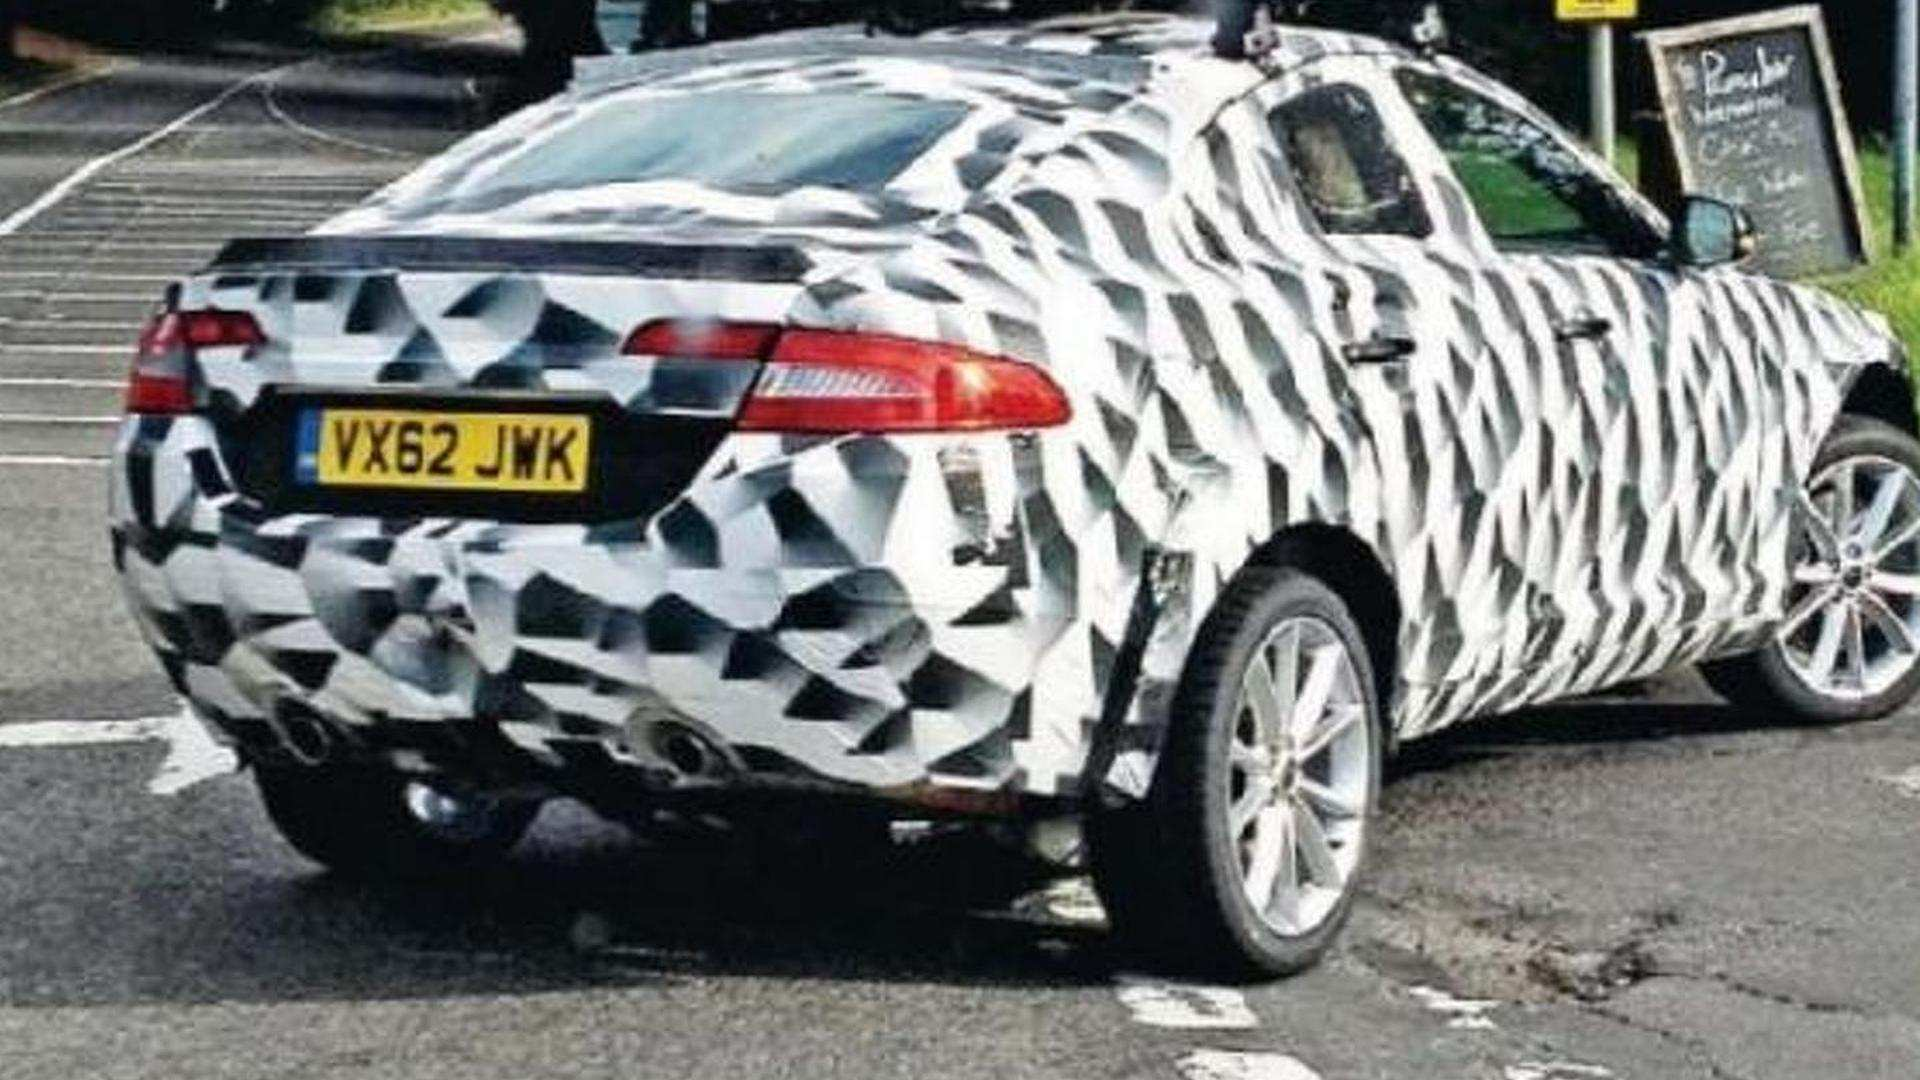 96 Gallery of 2020 Jaguar Xq Crossover Exterior with 2020 Jaguar Xq Crossover